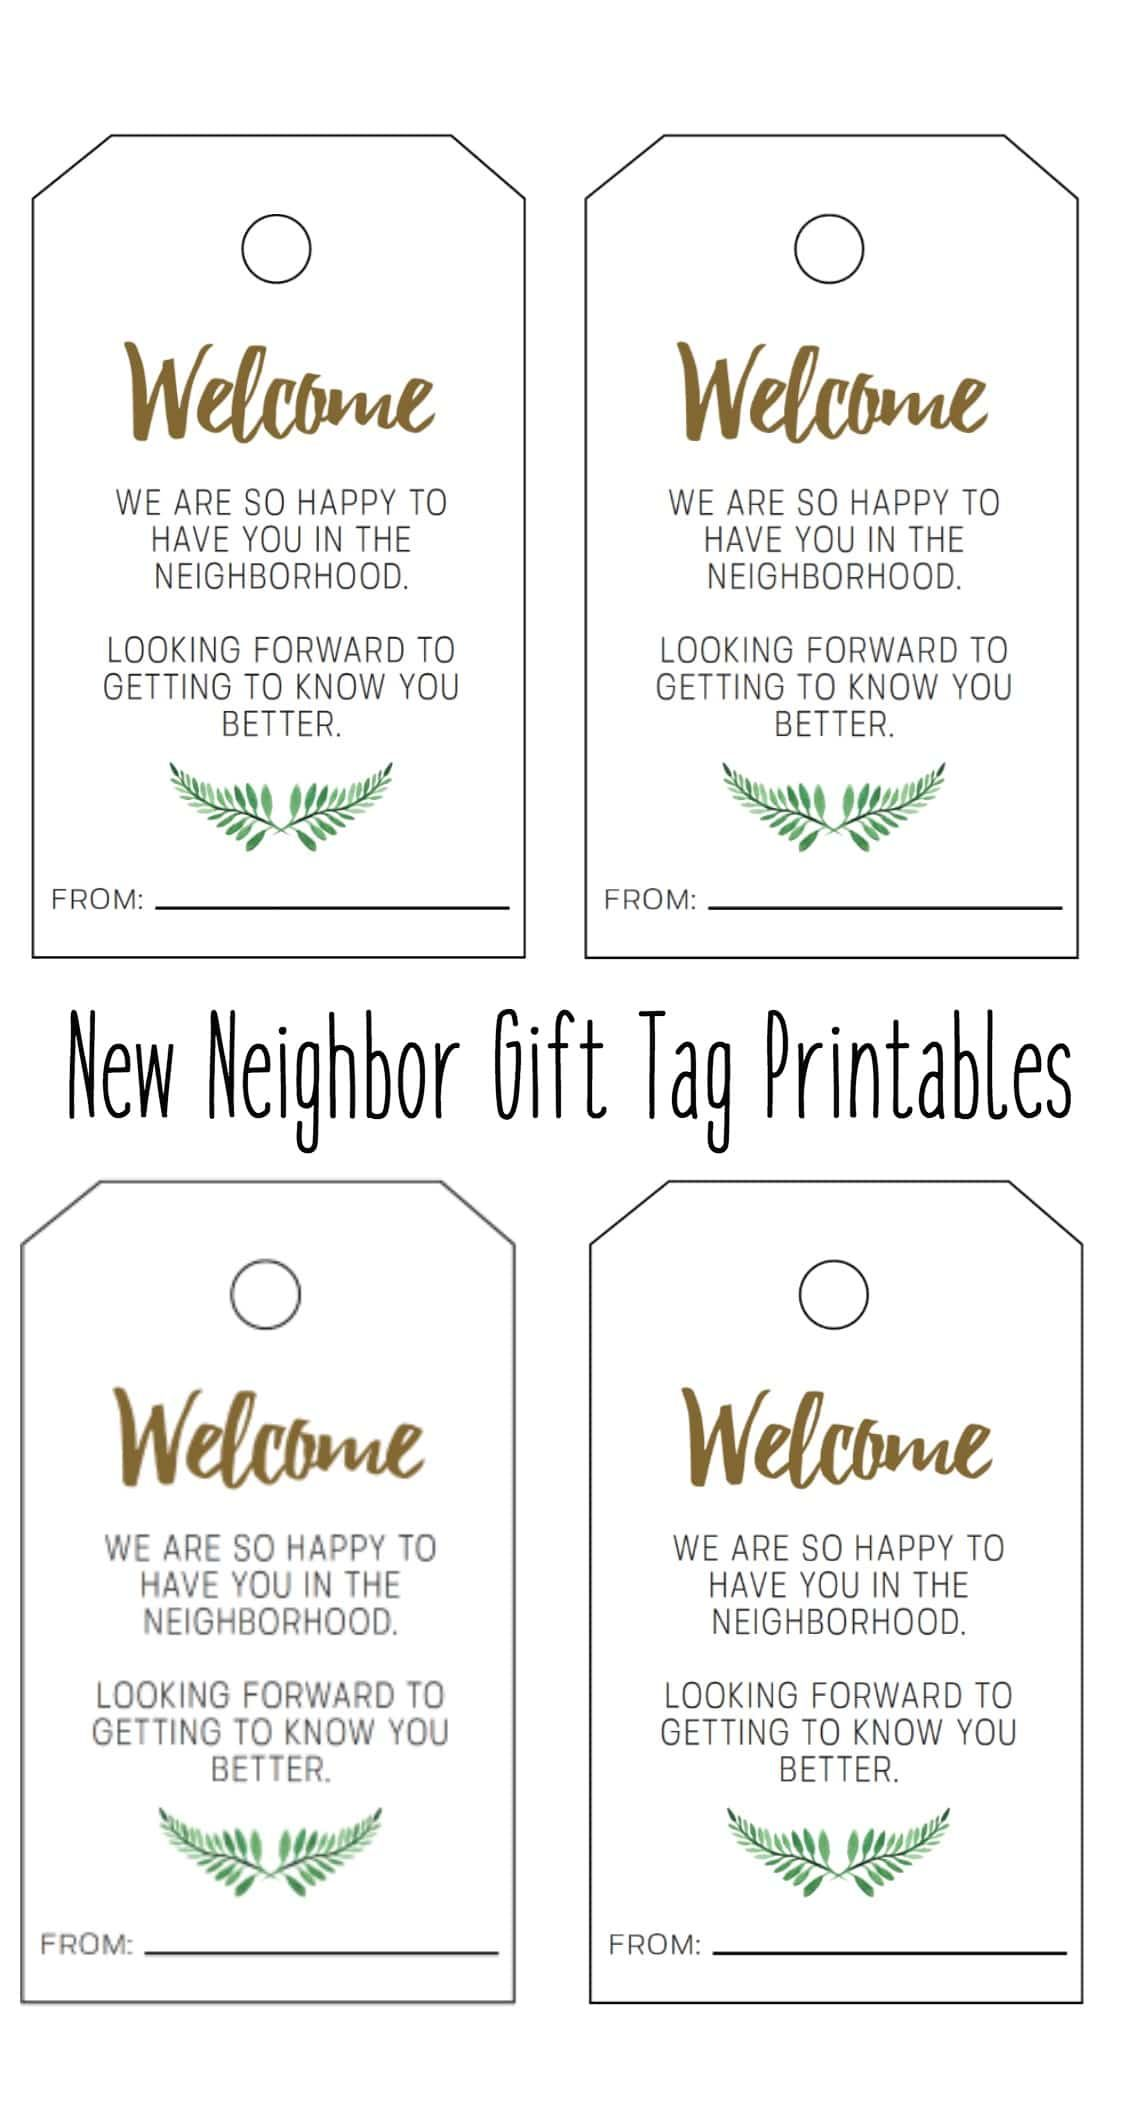 photograph about Welcome to the Neighborhood Printable identify Clean Neighbor Present Tag Printable - Welcome In the direction of The